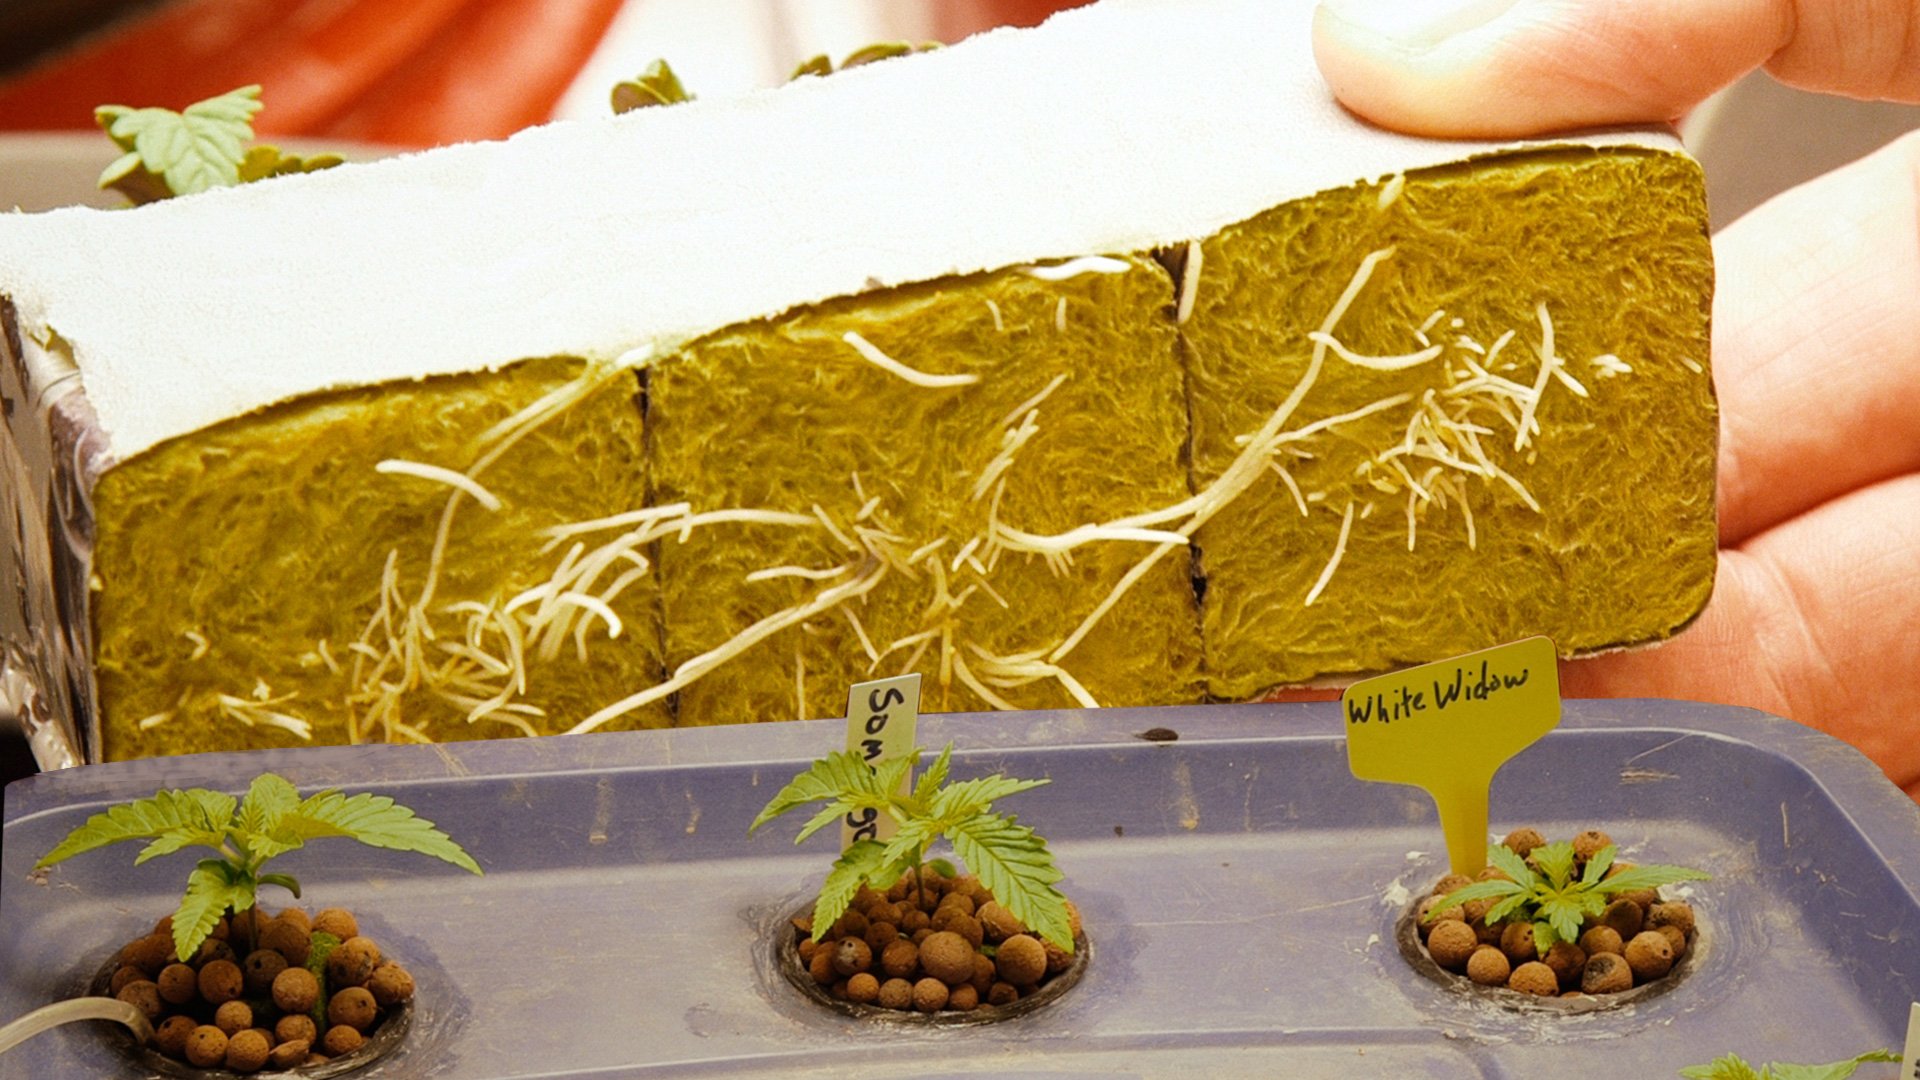 germinate-cannabis-seeds-in-rockwool-cubes-cannabasics-115-thumbnail-1